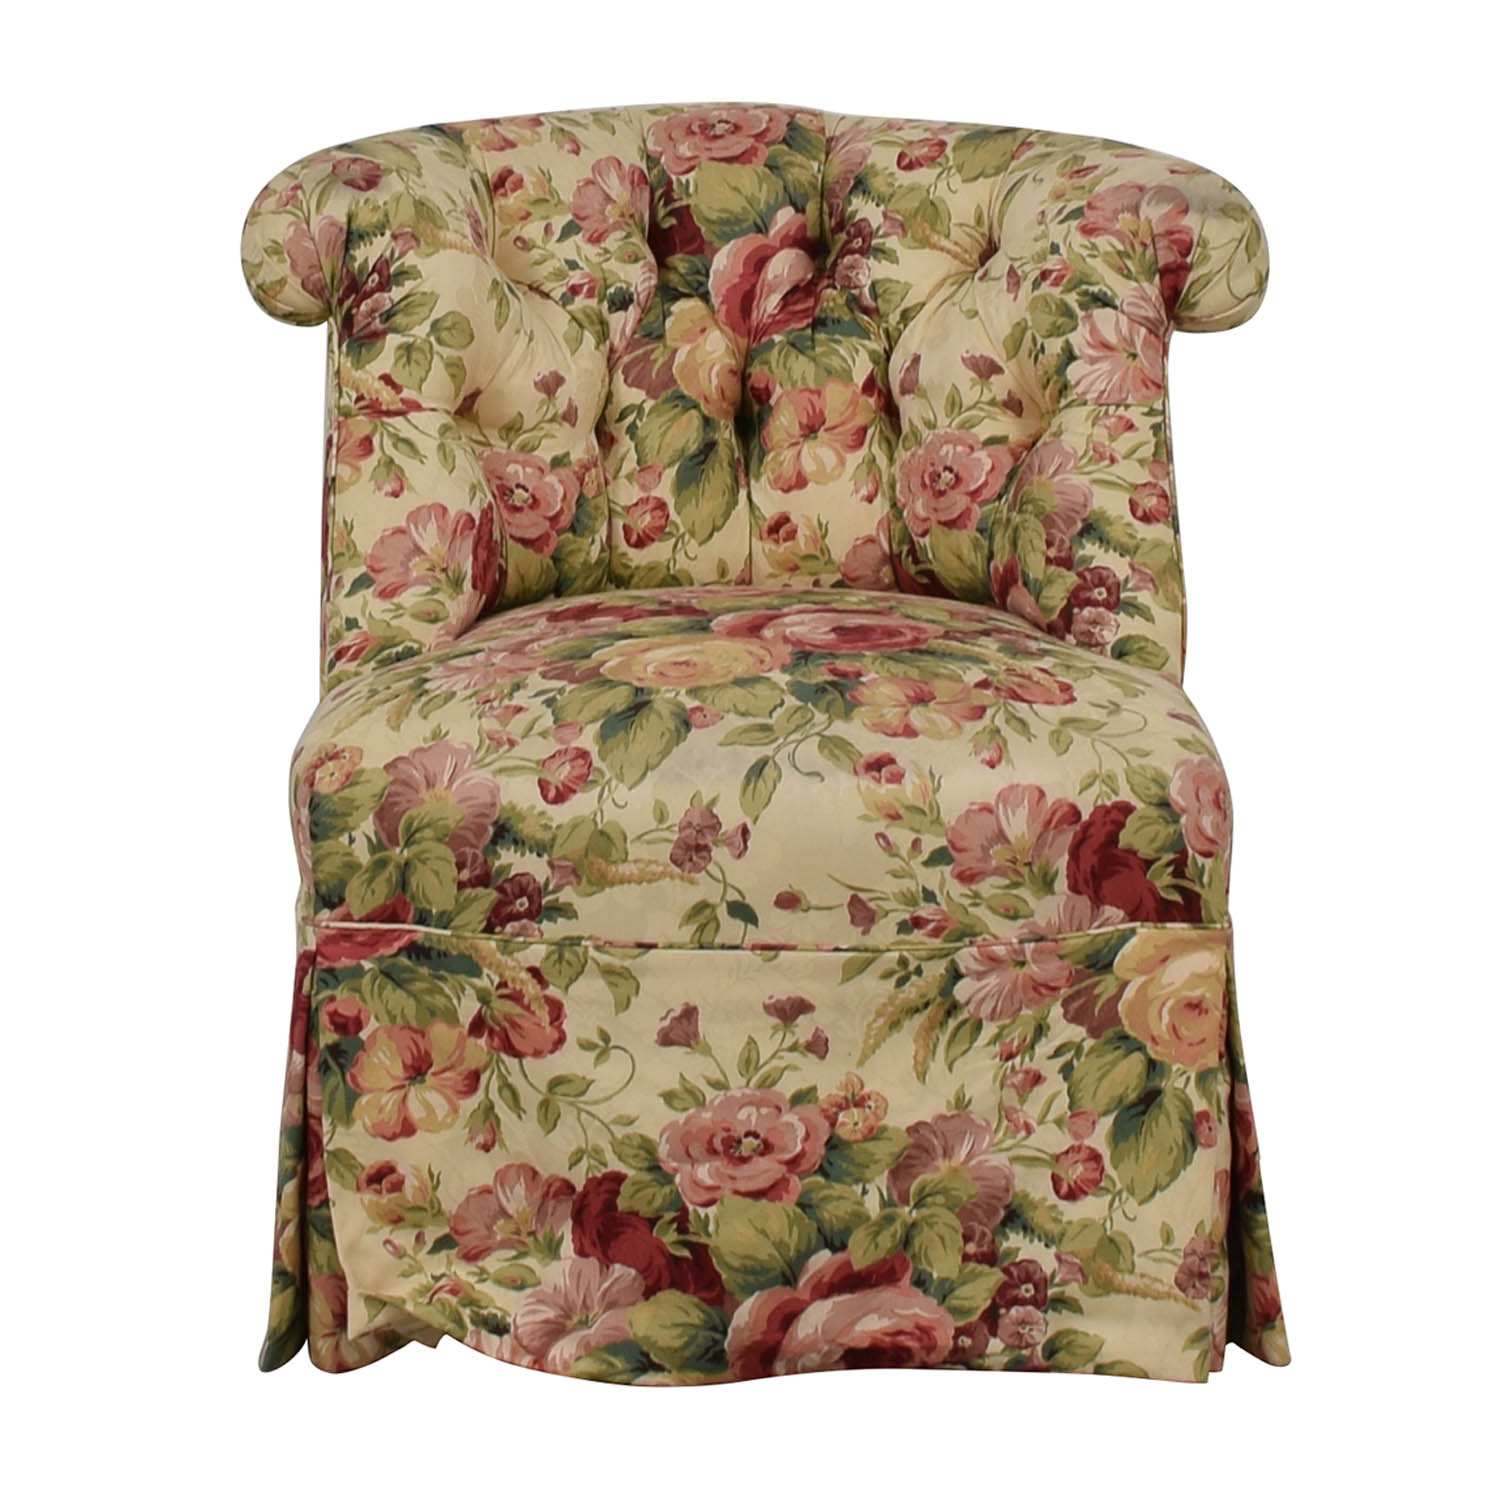 Floral Accent Chairs.90 Off Furniture Masters Furniture Masters Floral Accent Chair Chairs